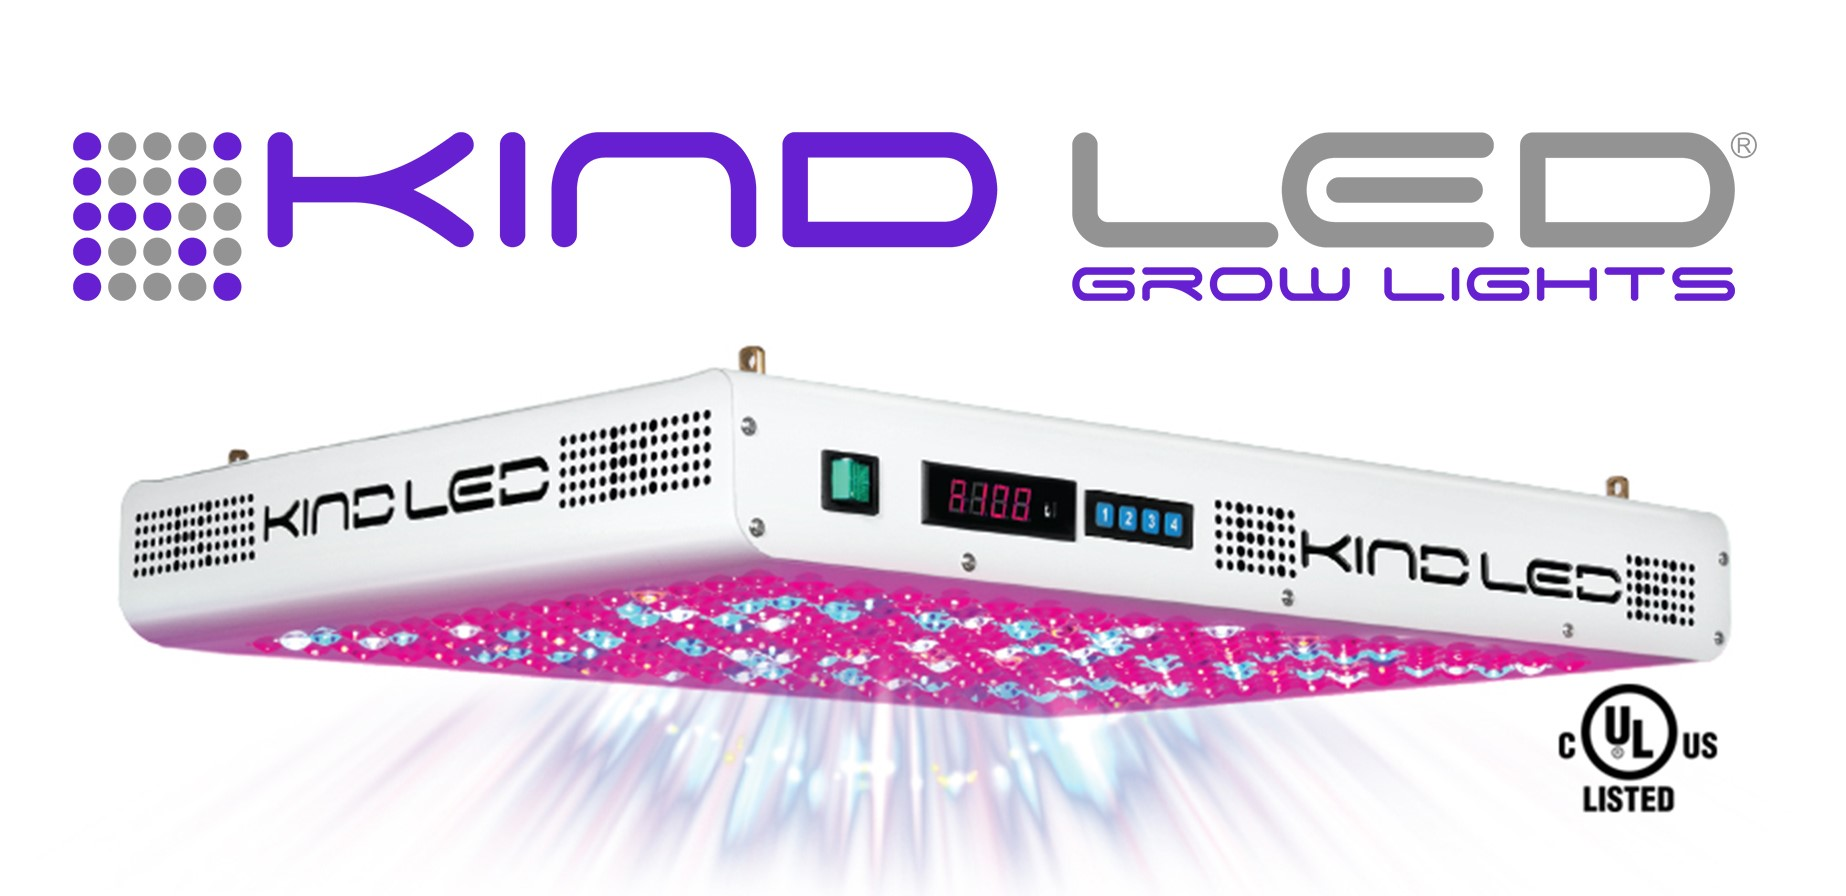 Kind Led Launches Commercially Certified Indoor Grow Lights